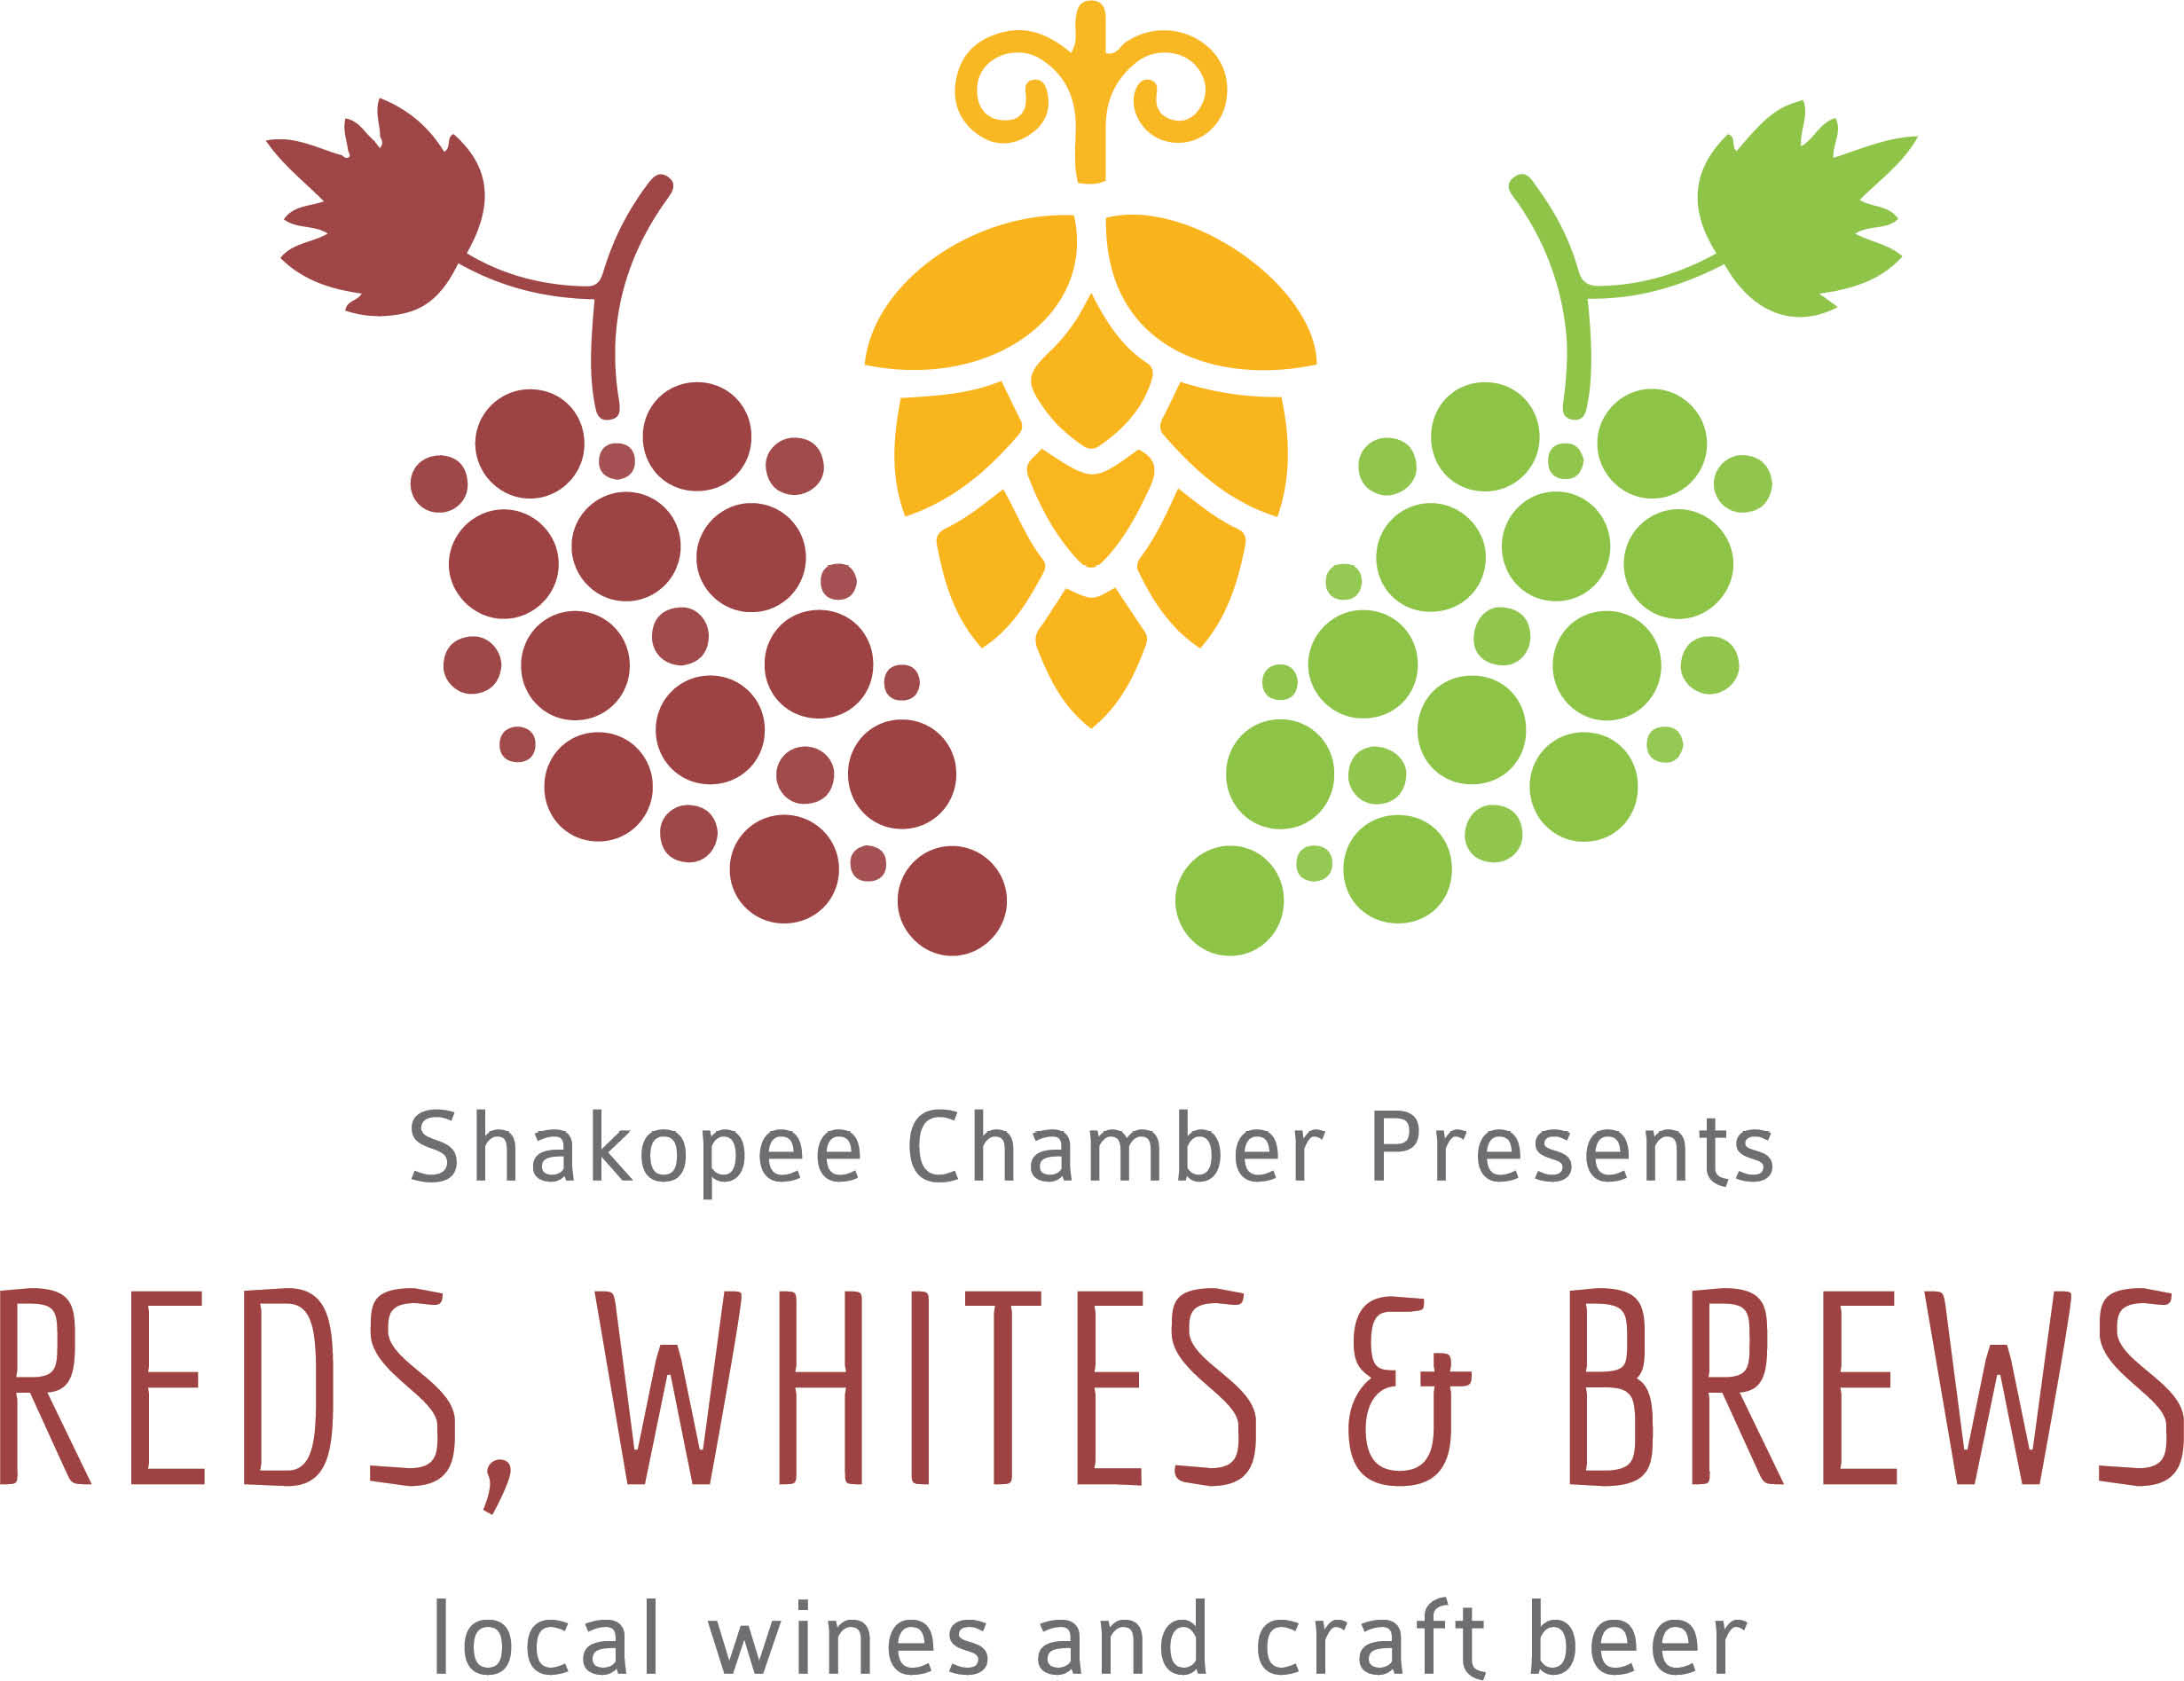 Shakopee Chamber & Visitors Bureau Reds, Whites and Brews Event